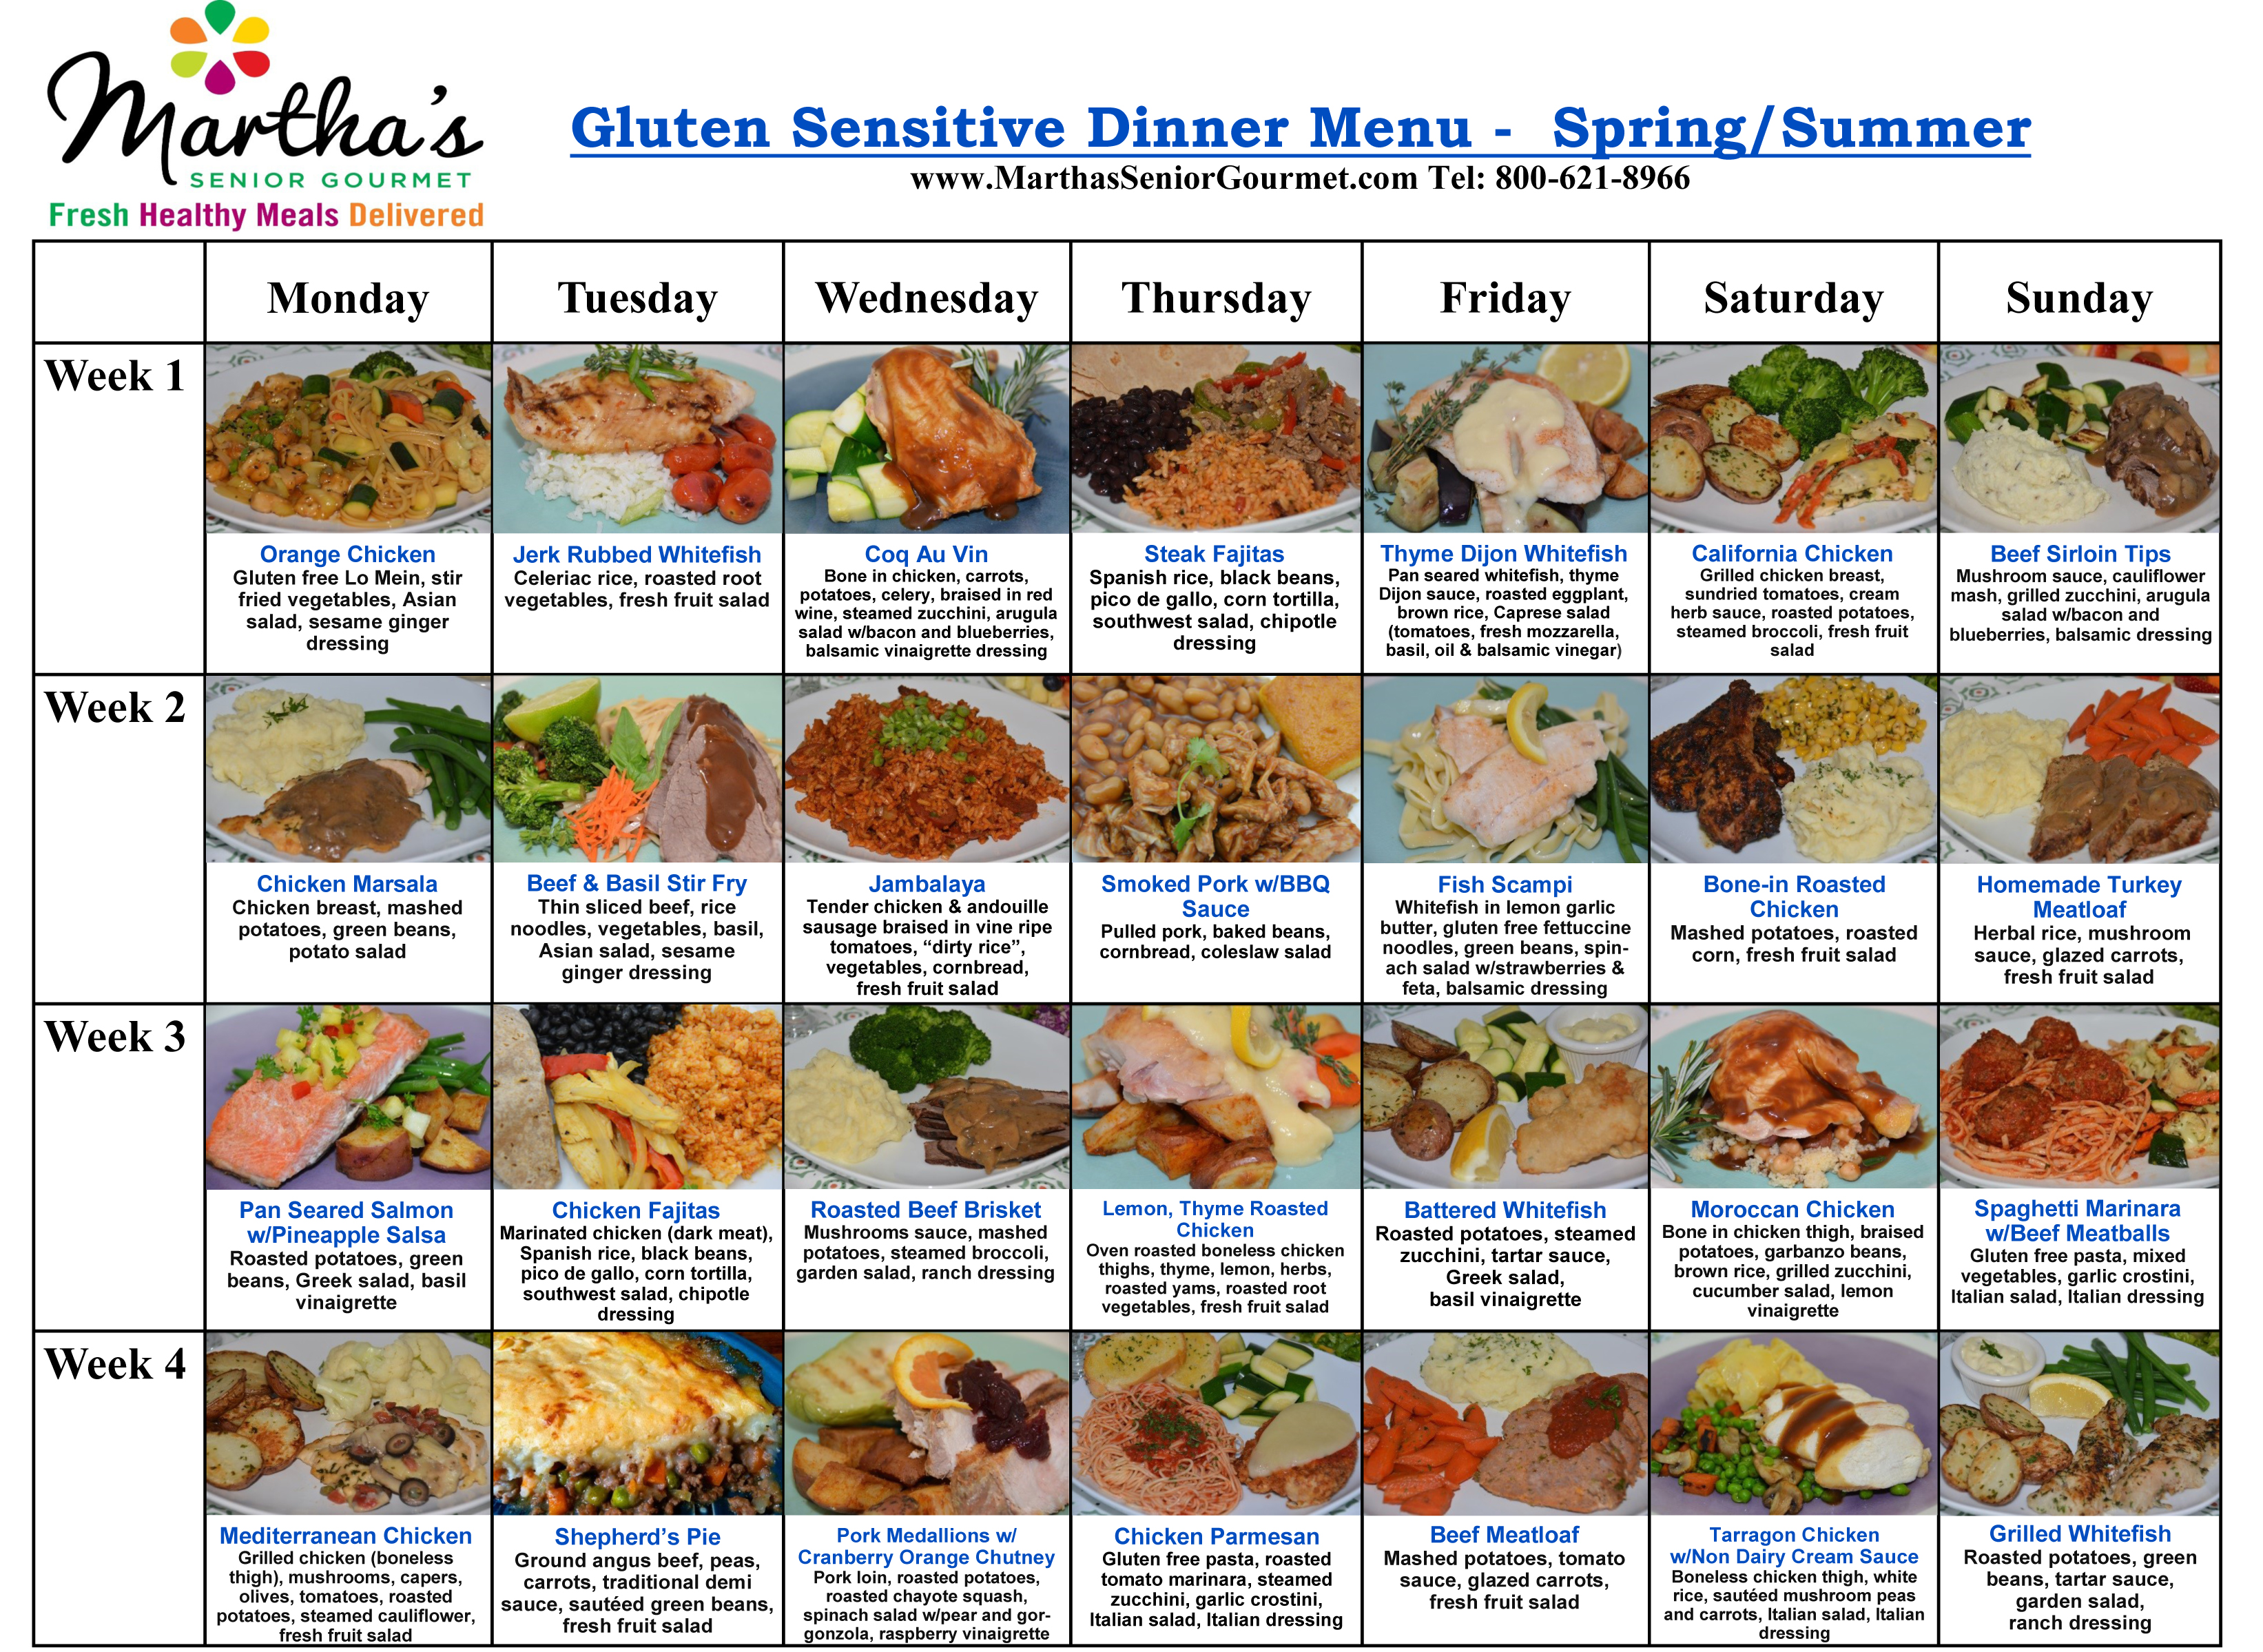 Martha's Senior Gourmet Gluten Sensitive Dinner Menu - Spring/Summer